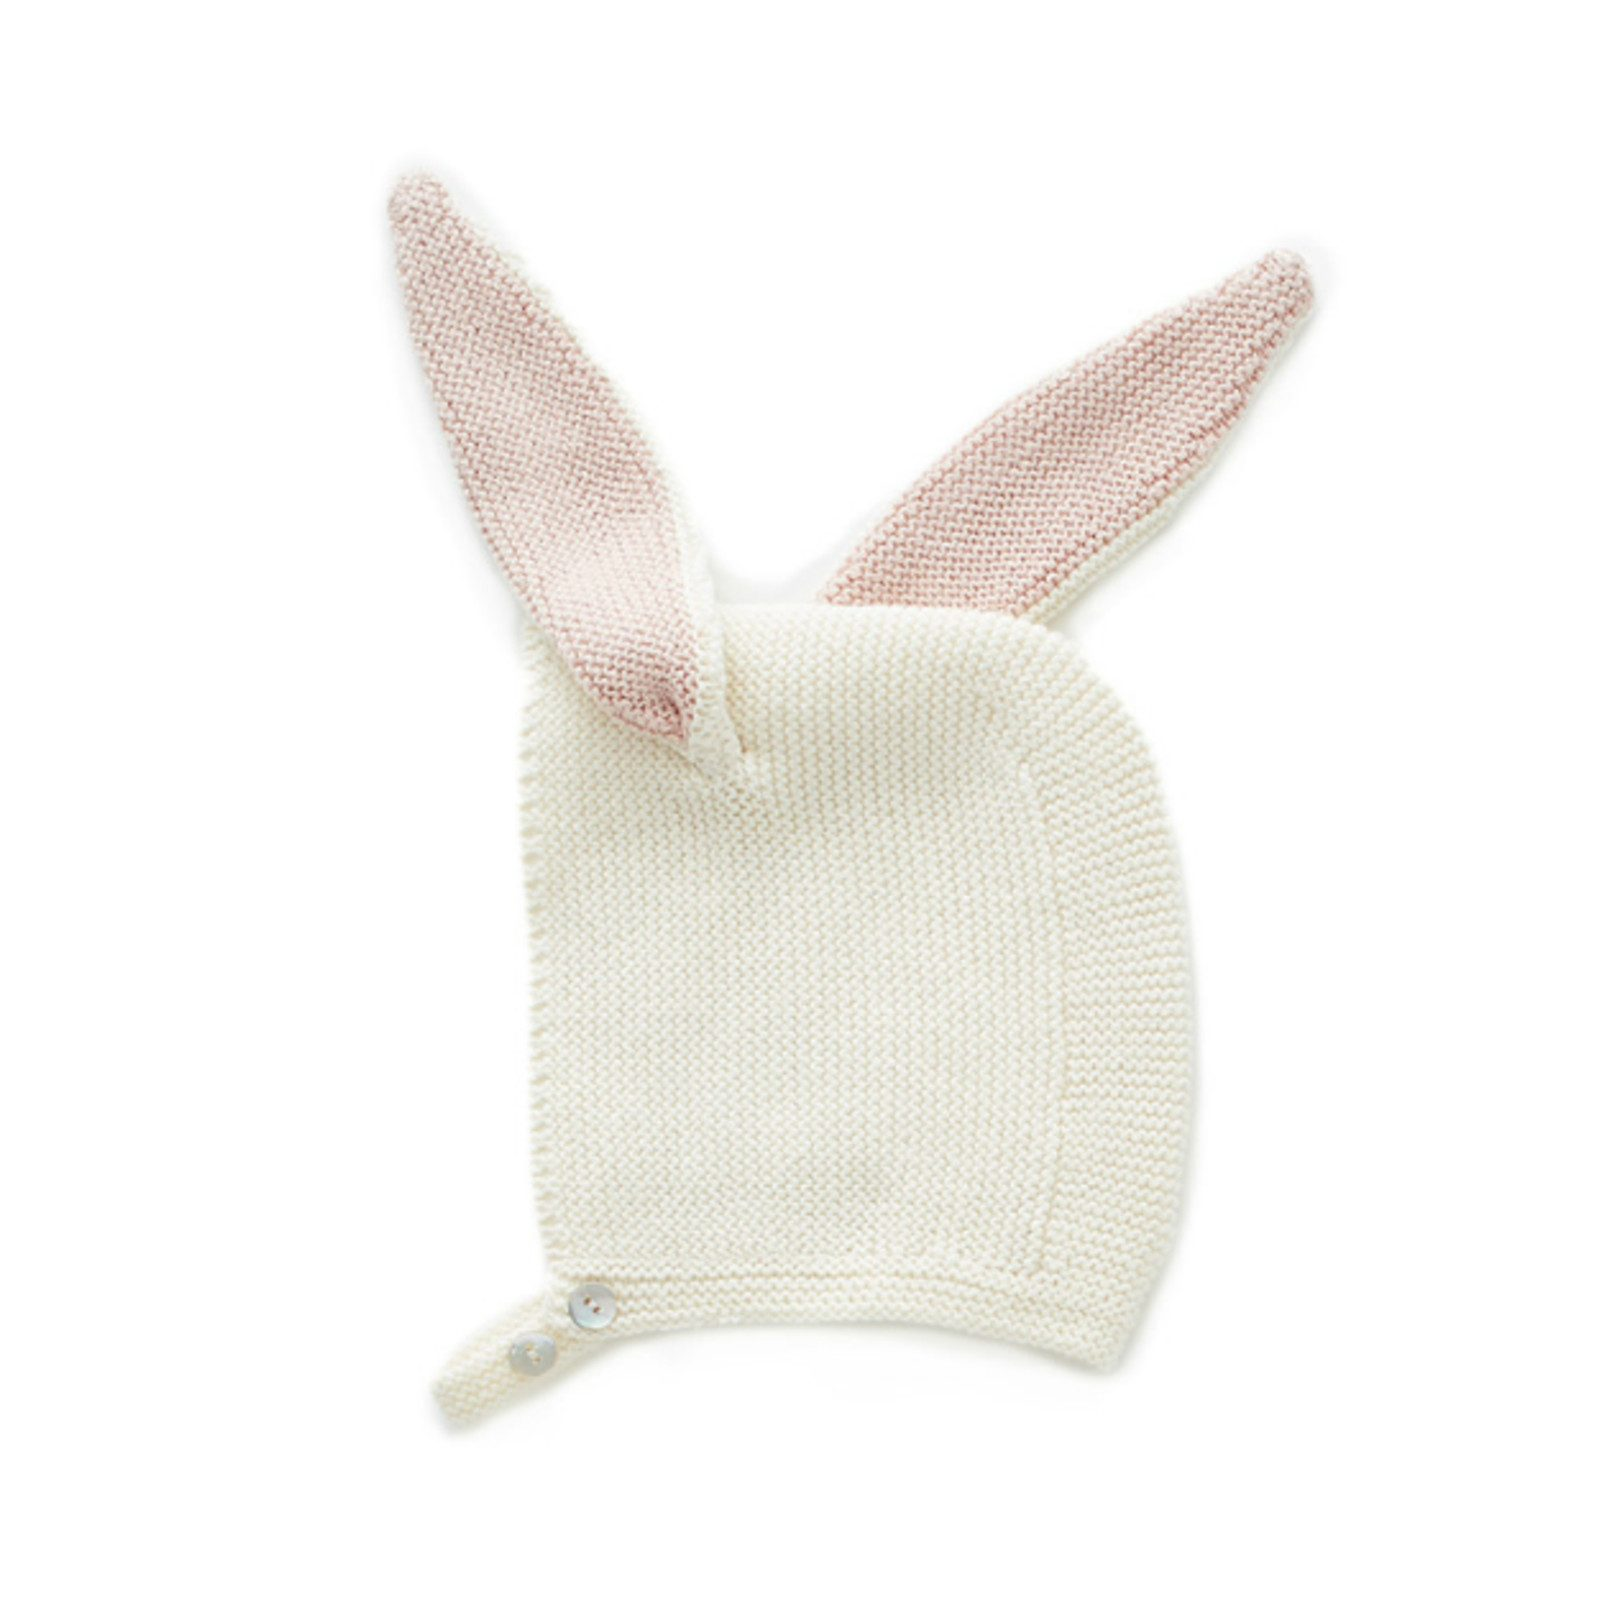 First Easter gifts for babies: Easter bunny knit baby hat   Maisonnette